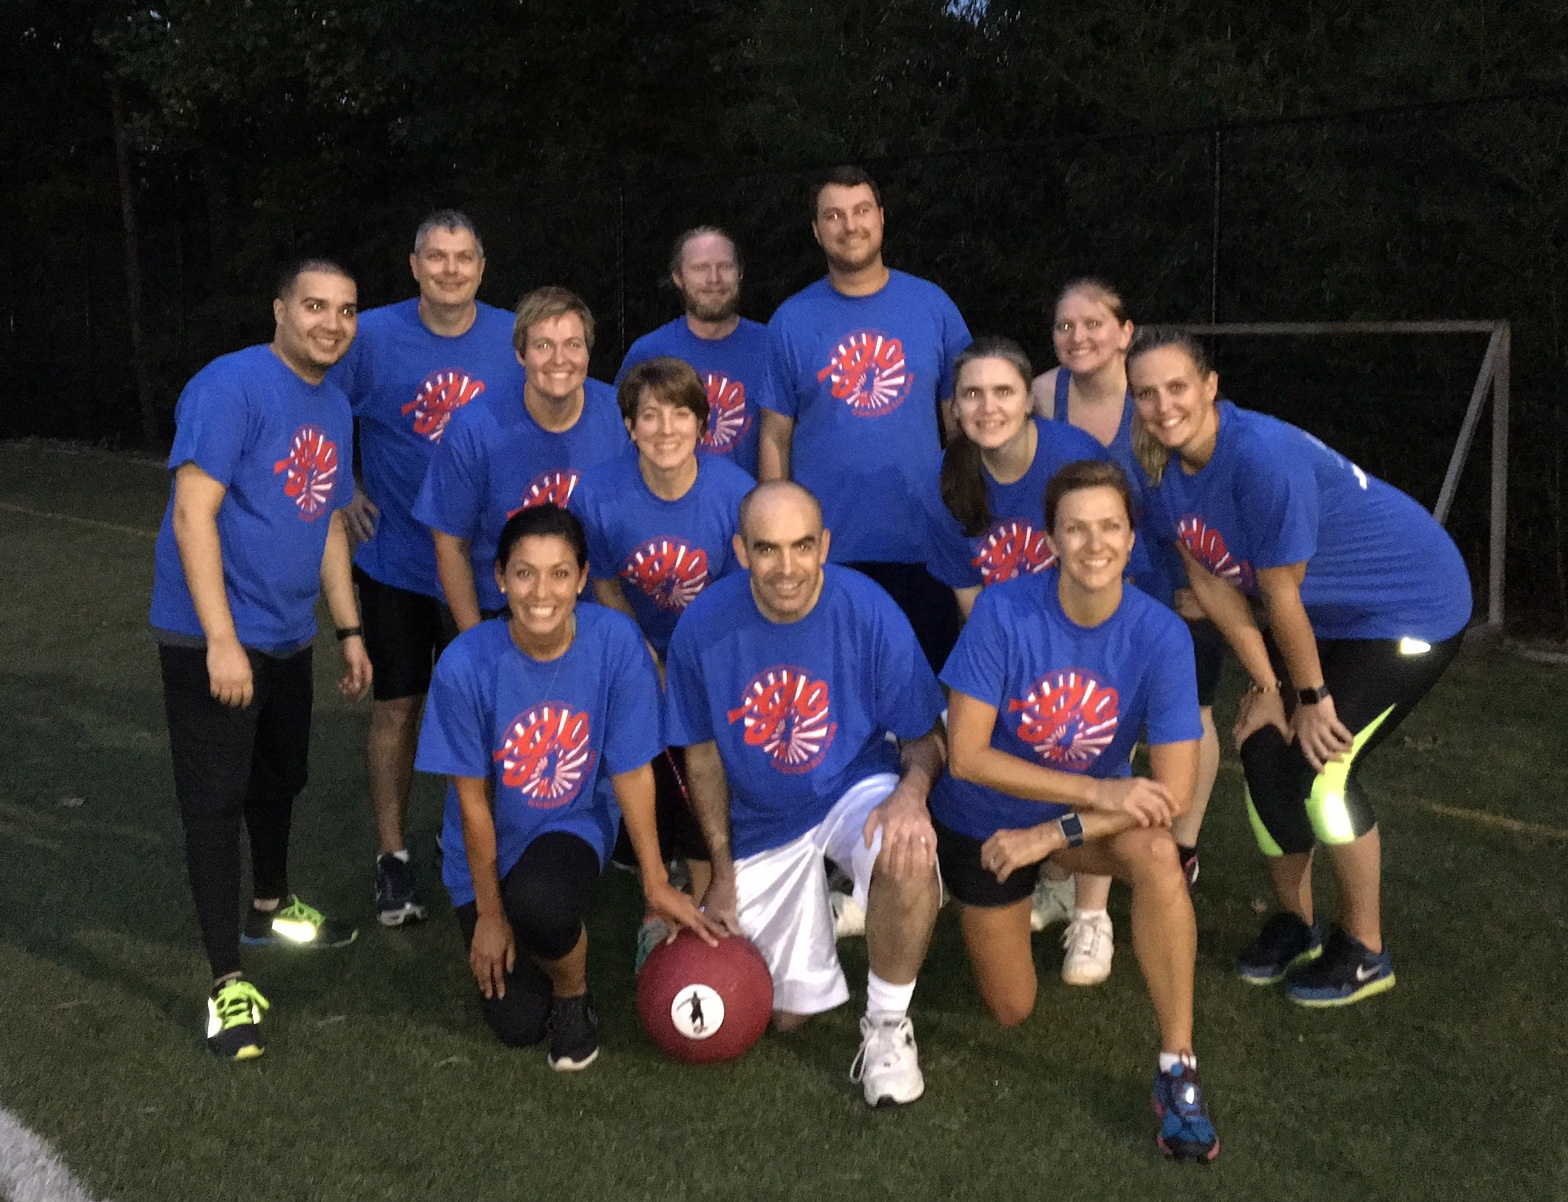 PBD Kickball Team.jpg